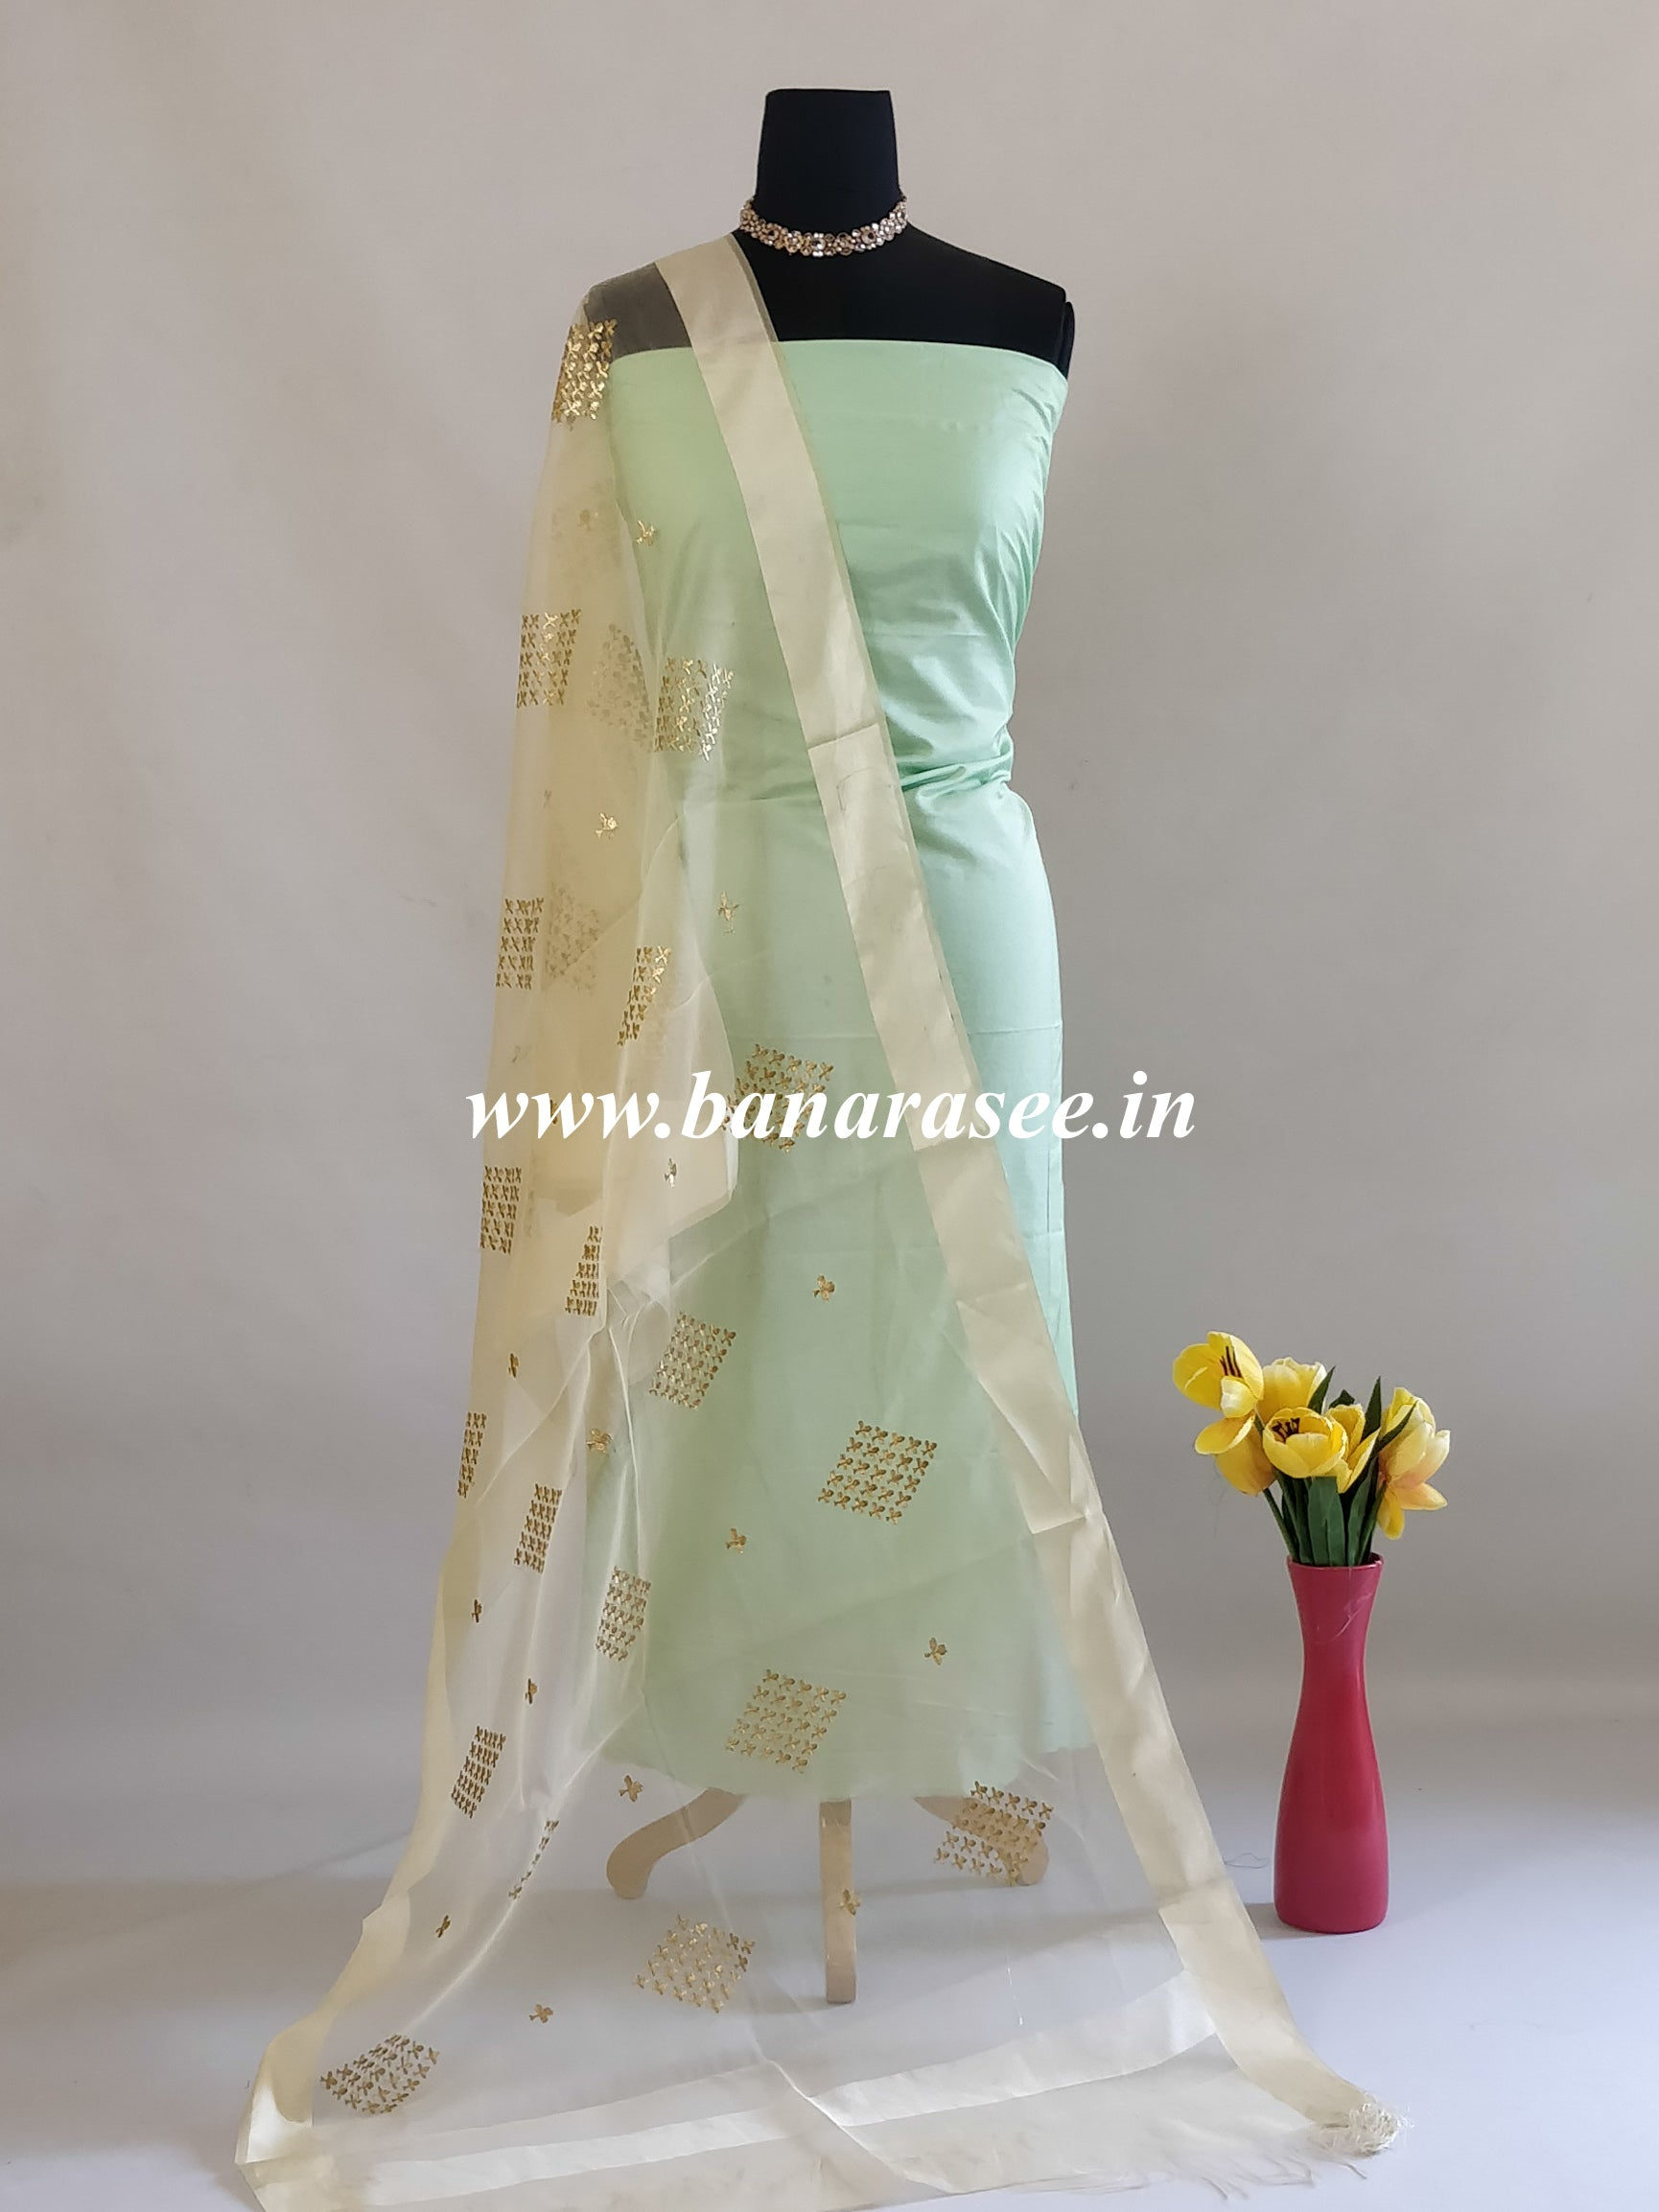 Banarasee Embroidered Gold Buta Design Organza Dupatta-Off White